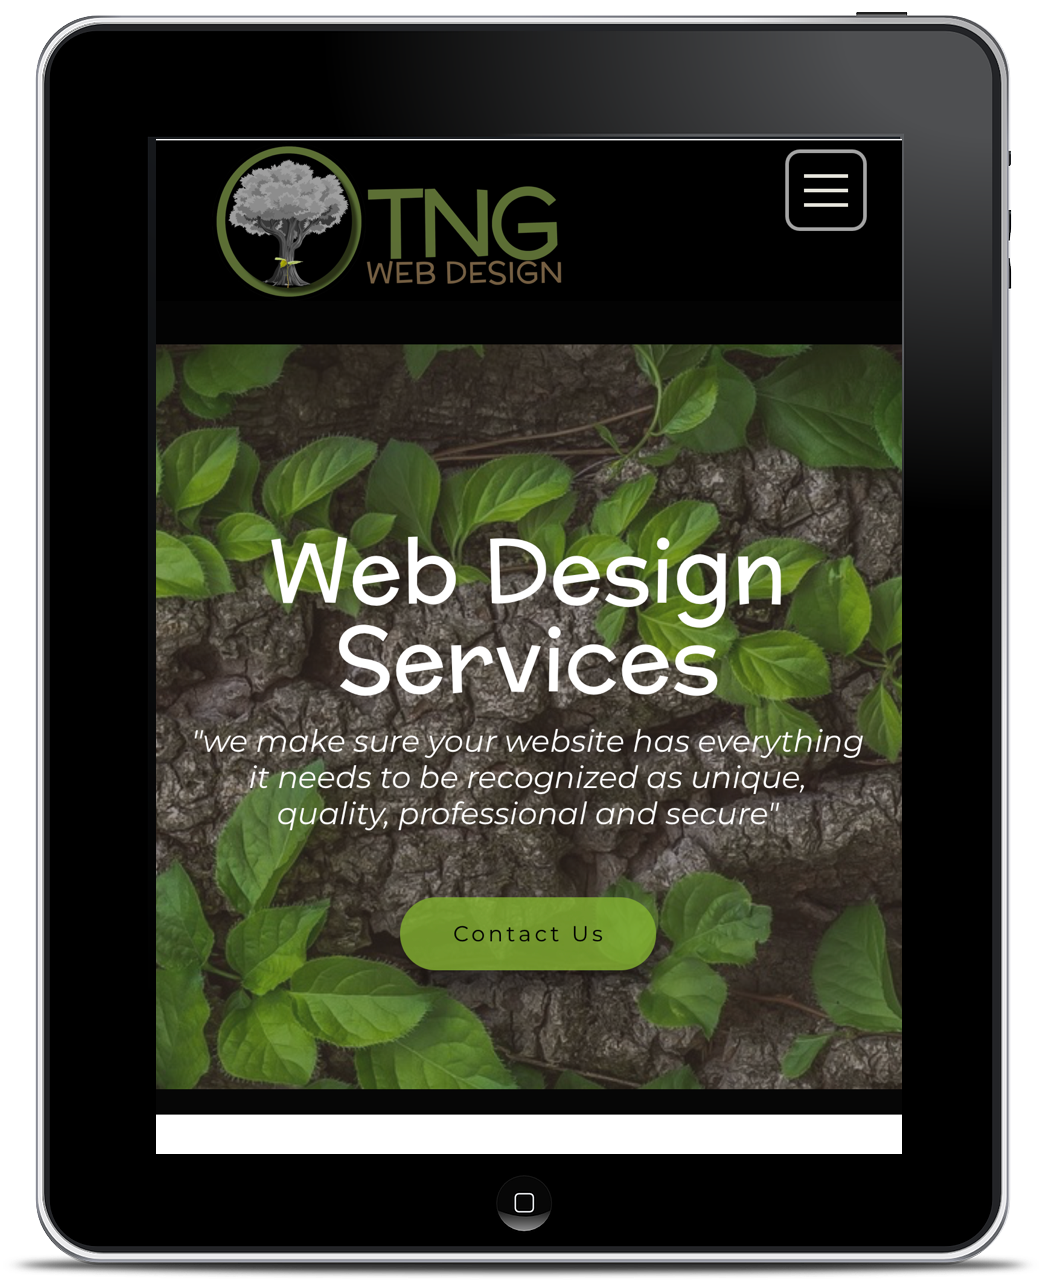 Quality Website Design Tablet Demo for TNG Web Design